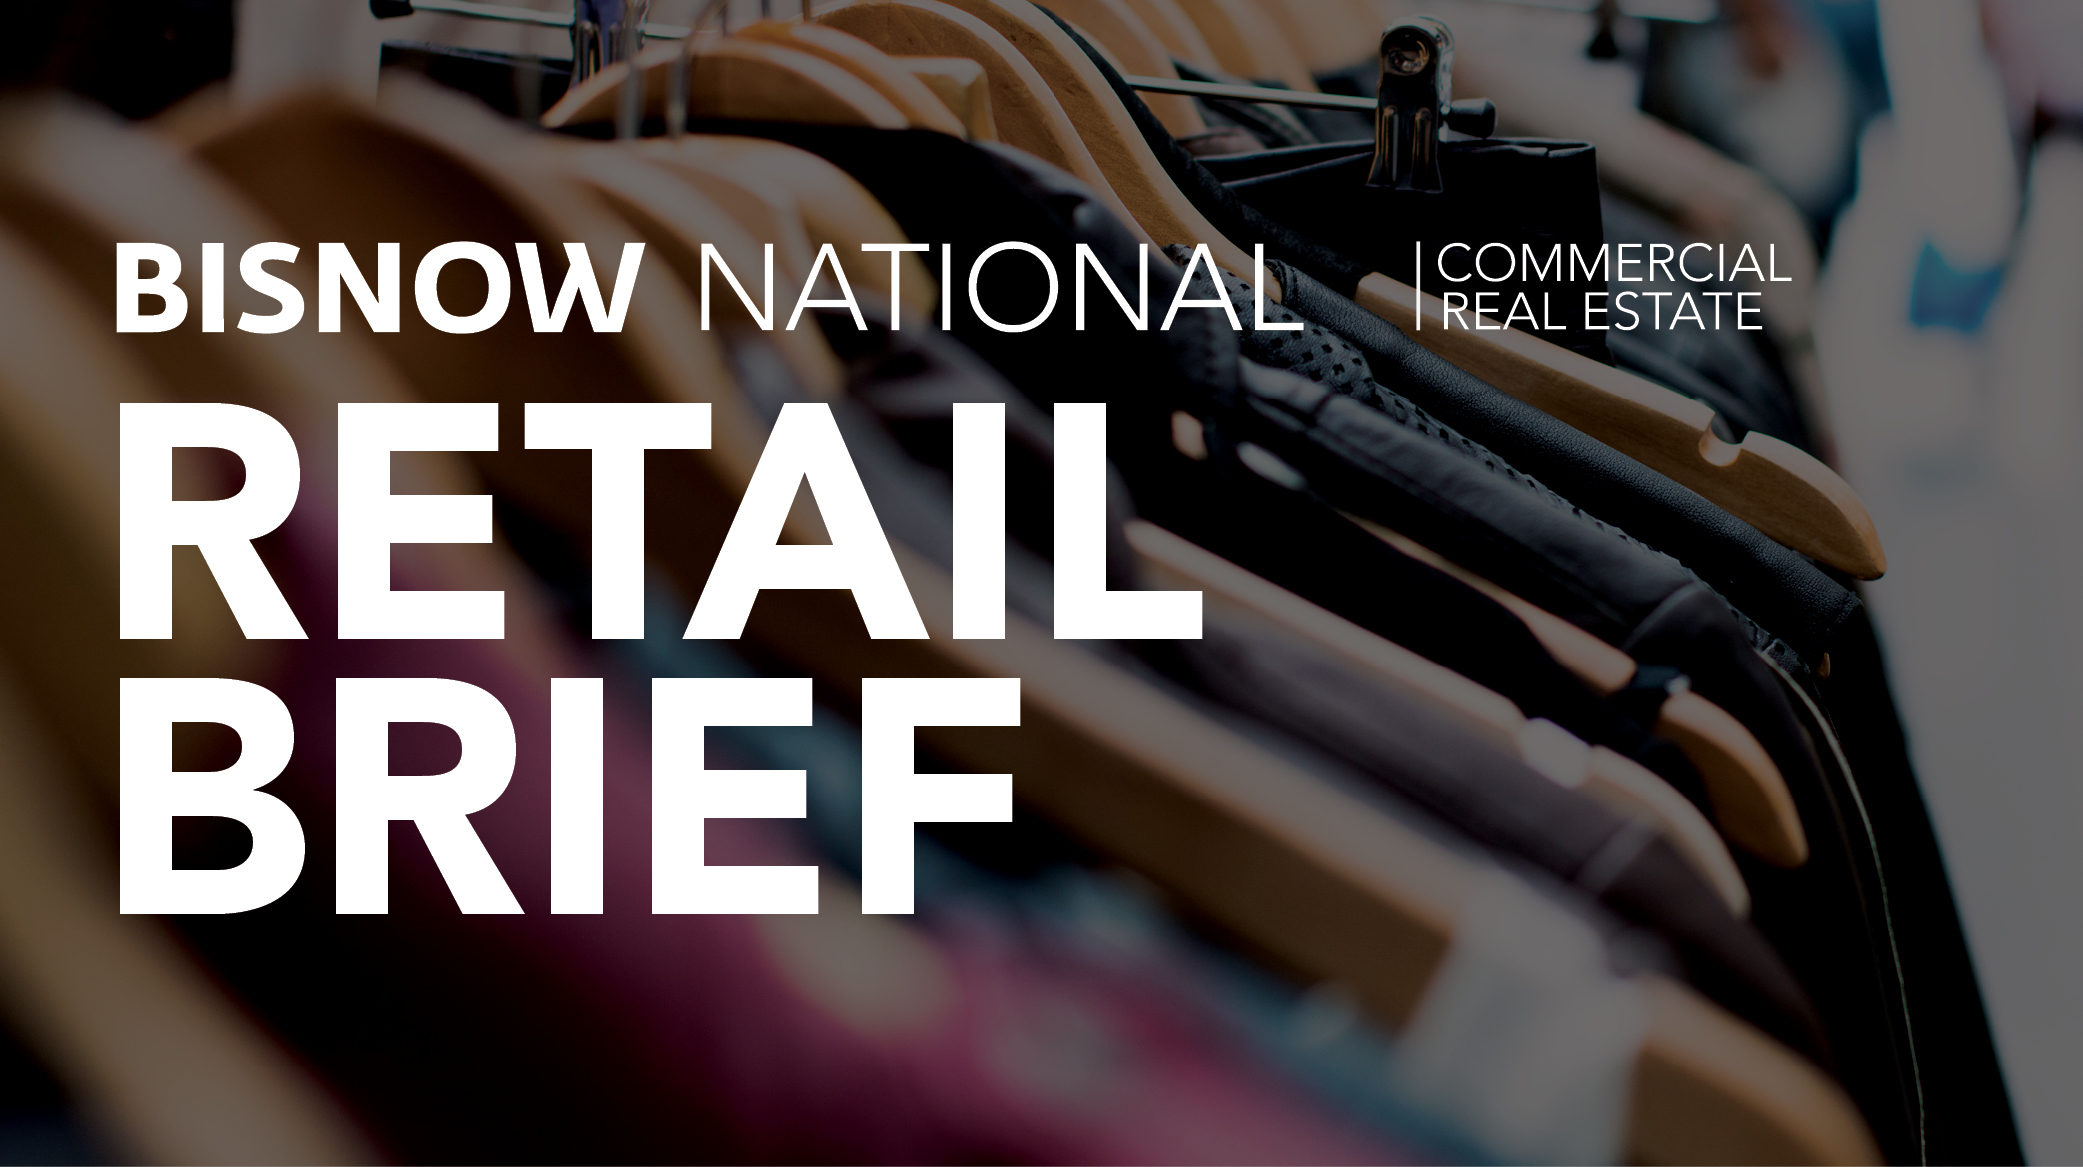 Bisnow Morning Brief Retail Weekly Brief [national]